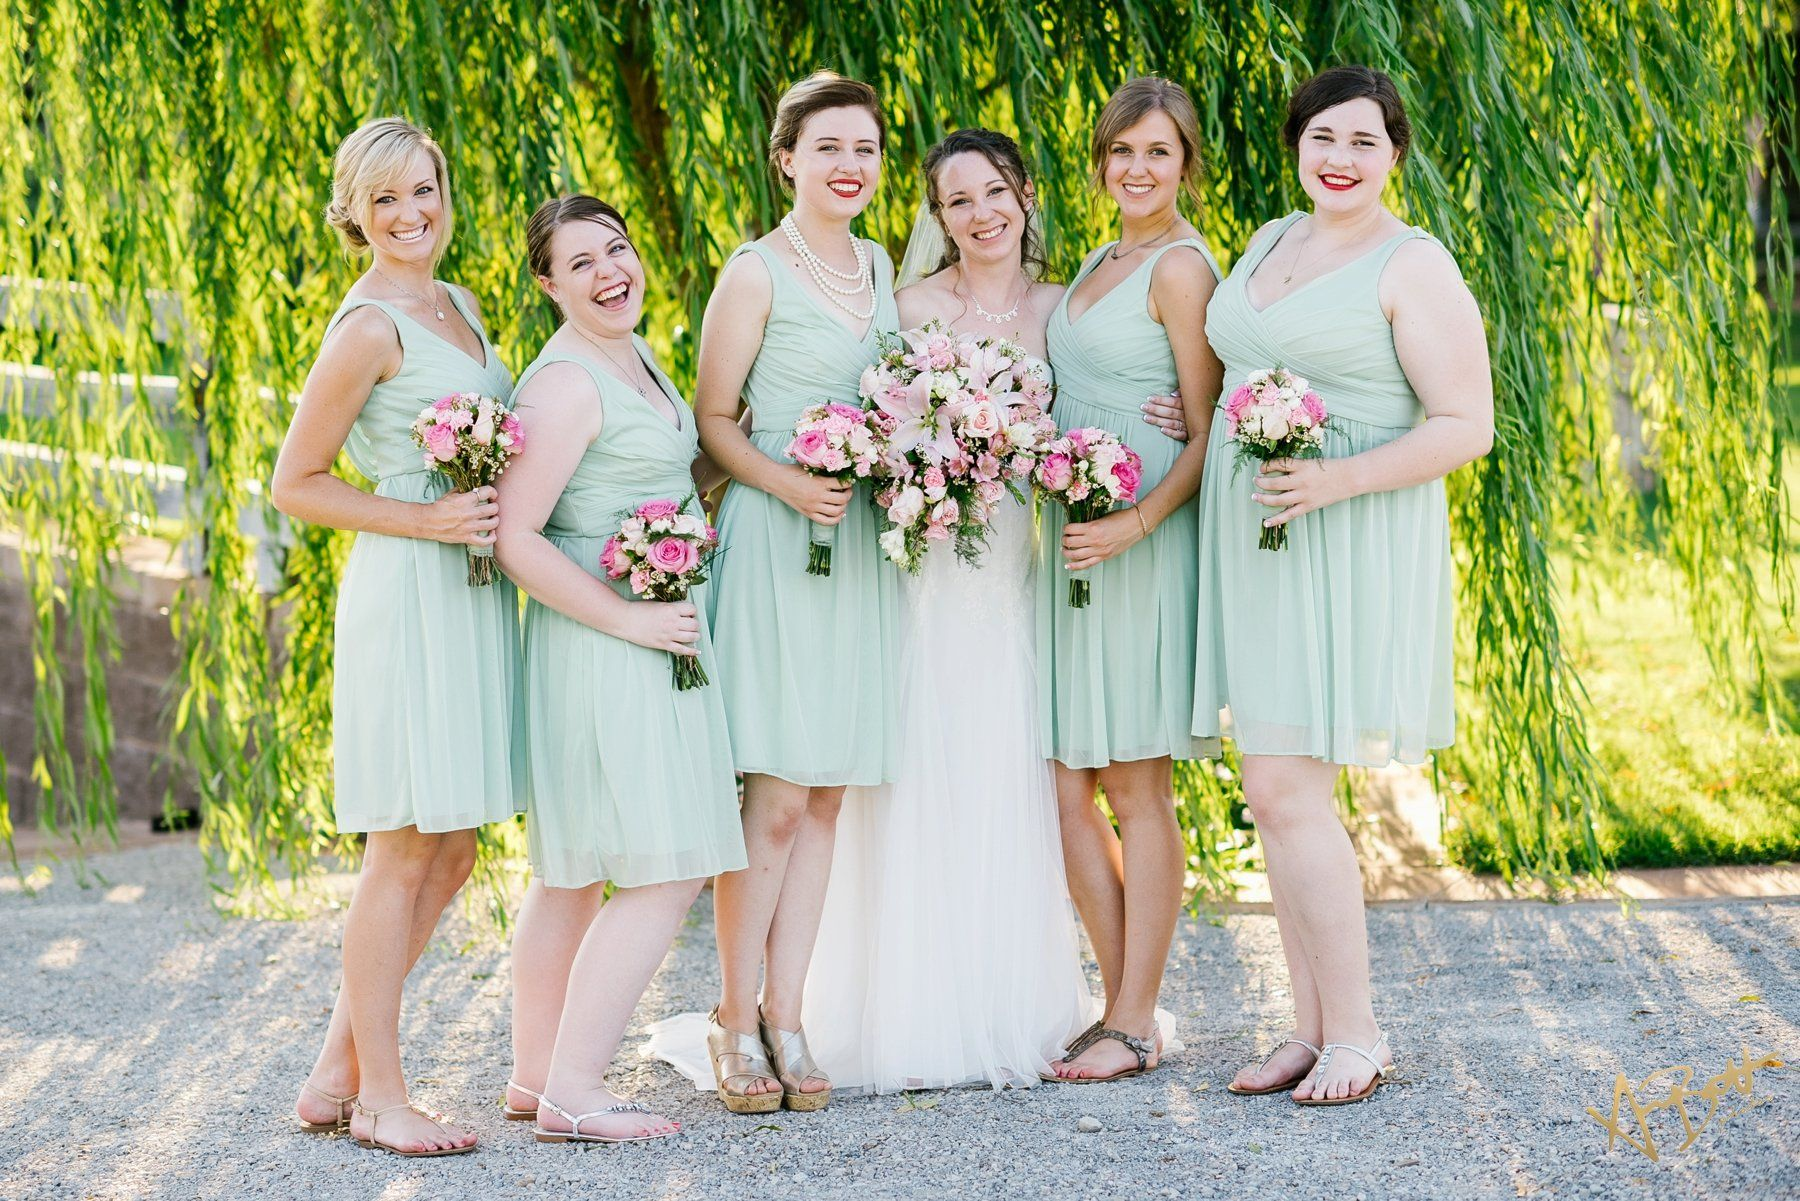 Davids bridal meadow green bridesmaid dresses beautiful for a davids bridal meadow green bridesmaid dresses beautiful for a summer outdoor wedding it worked ombrellifo Images